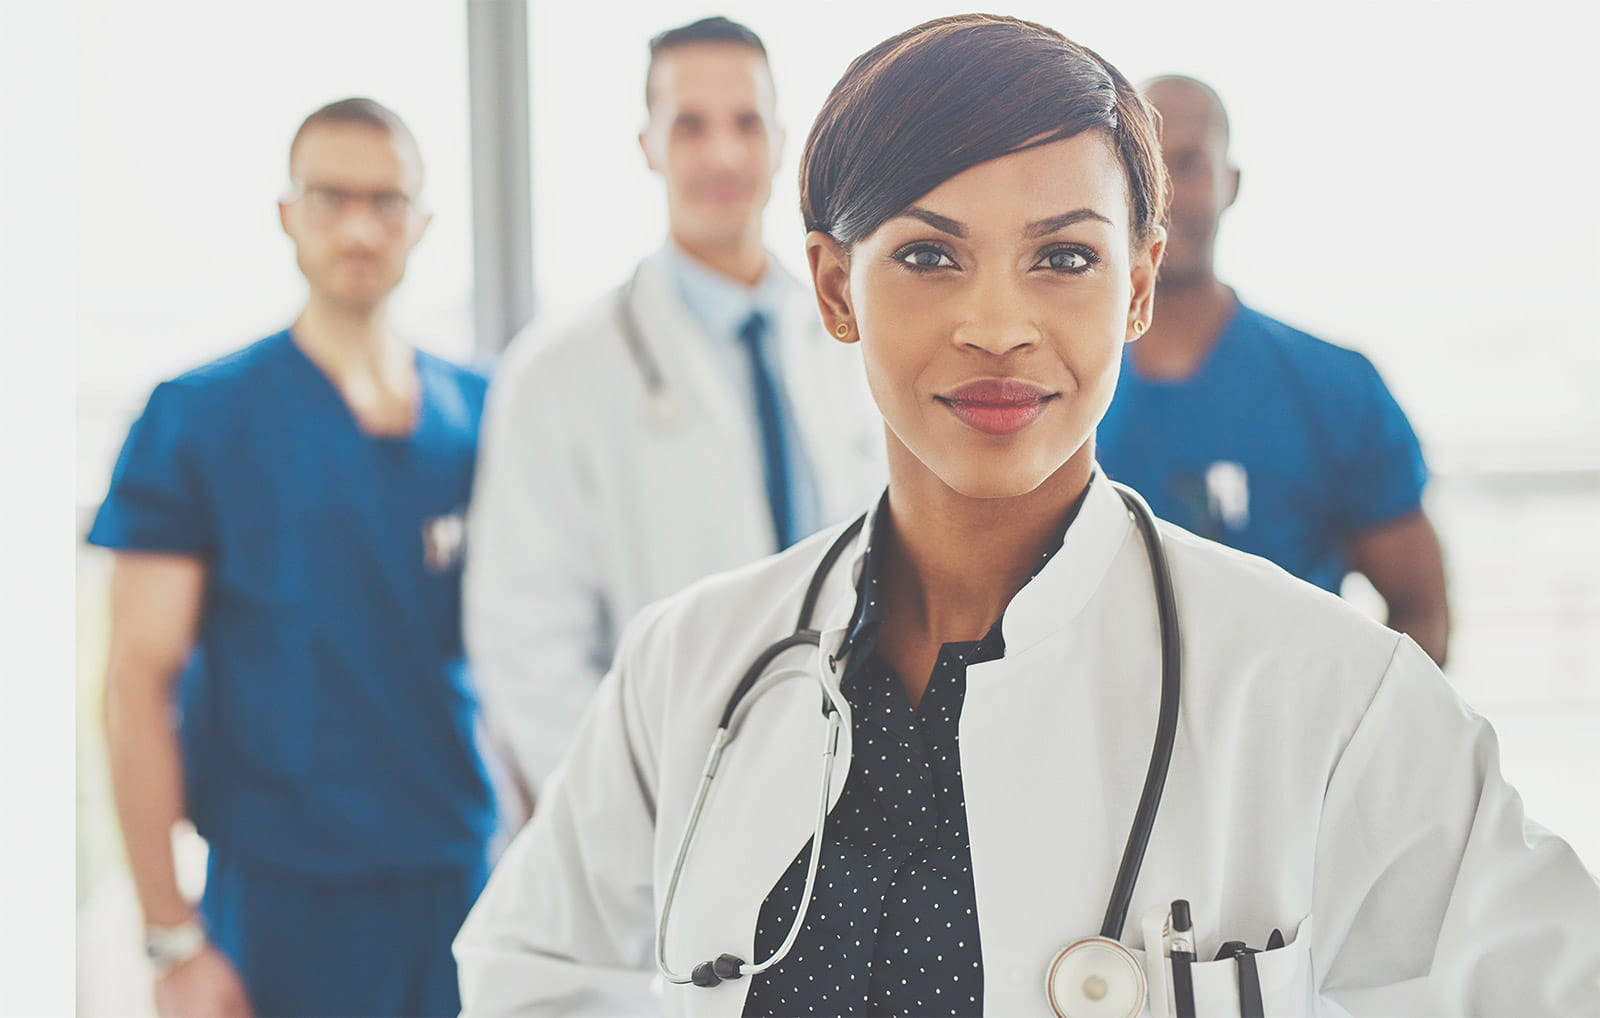 Black Female Doctor Leading Medical Team